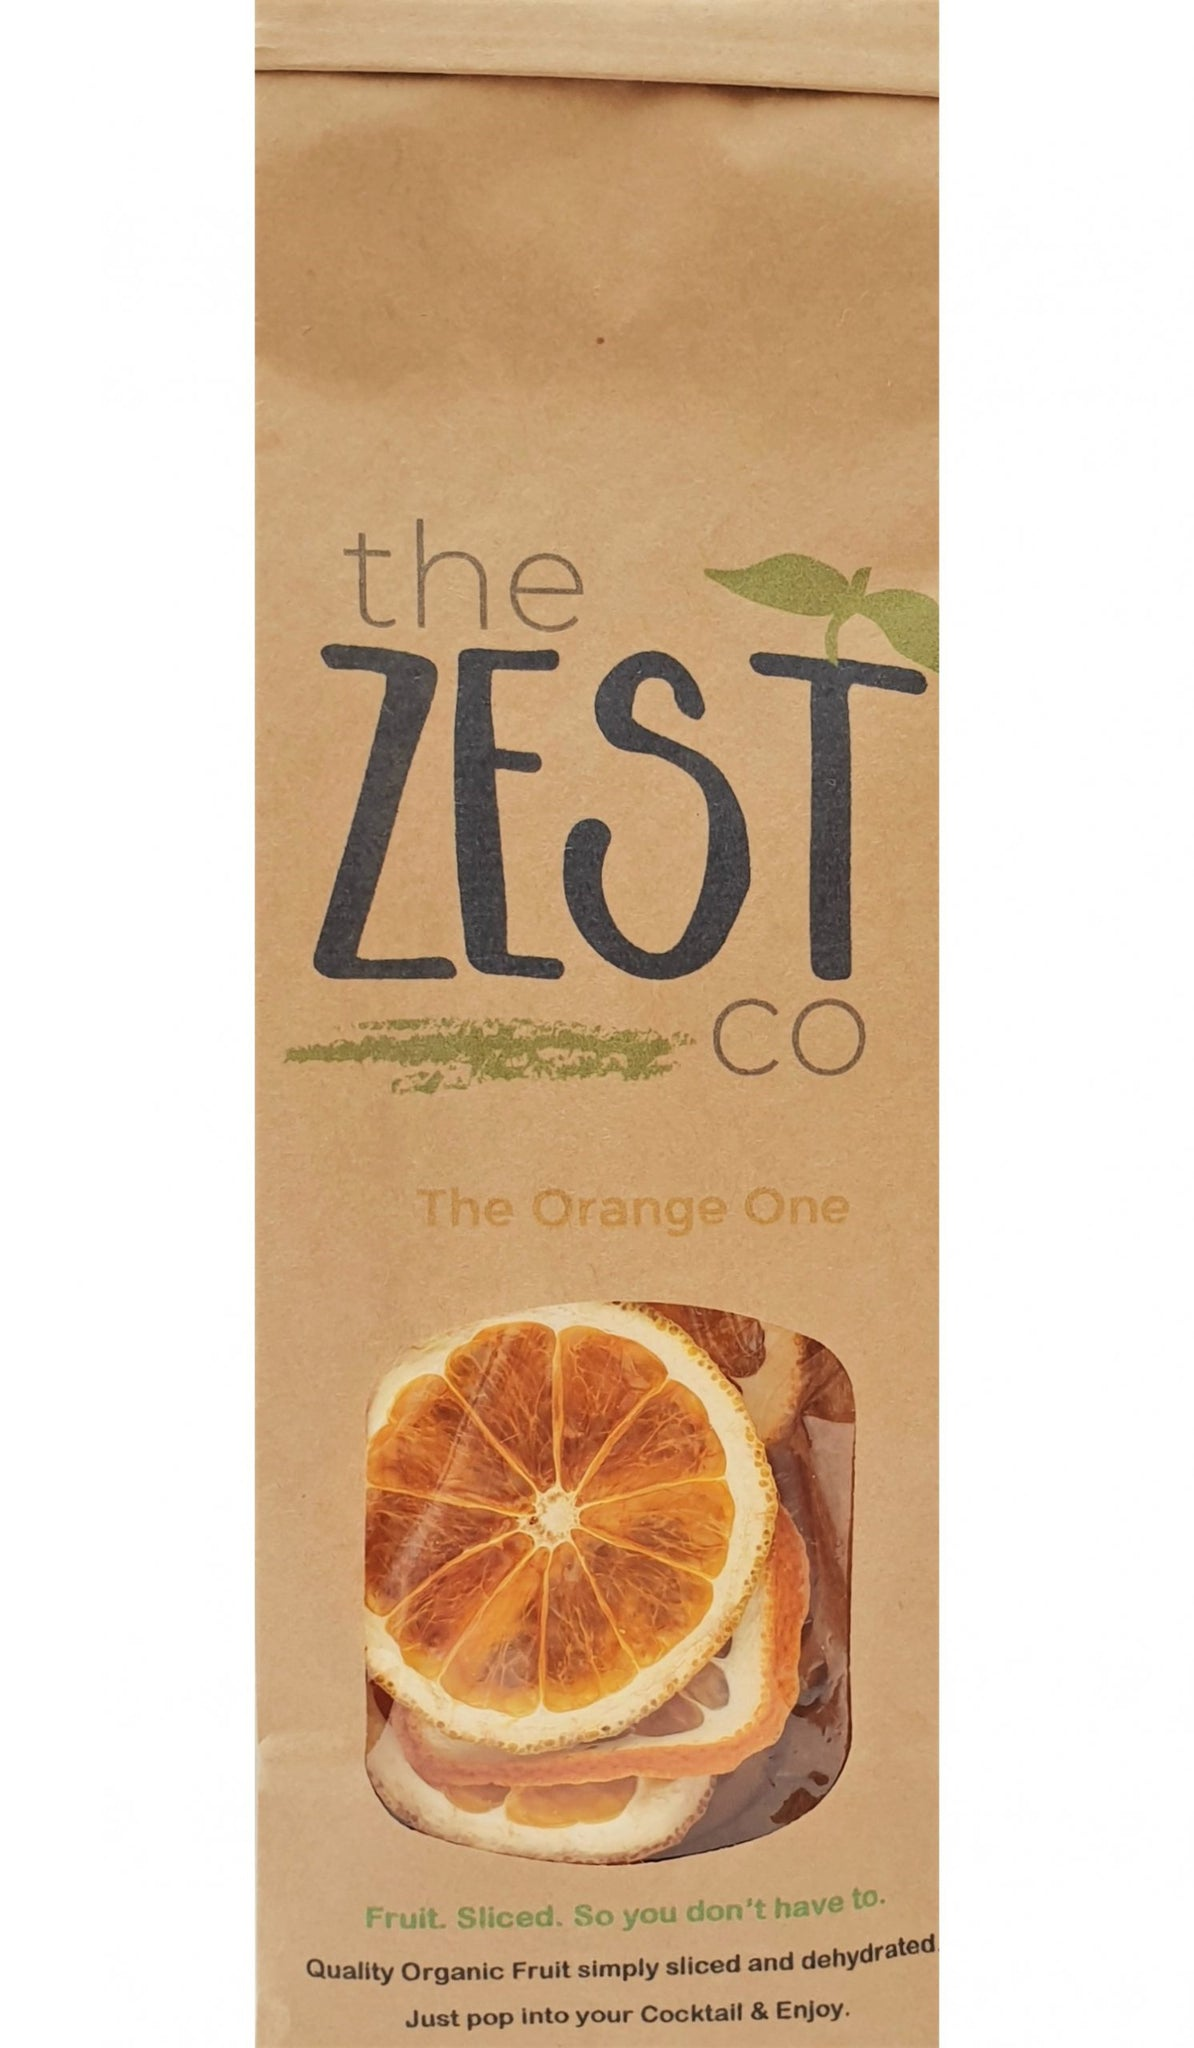 The Zest Co. The Orange One